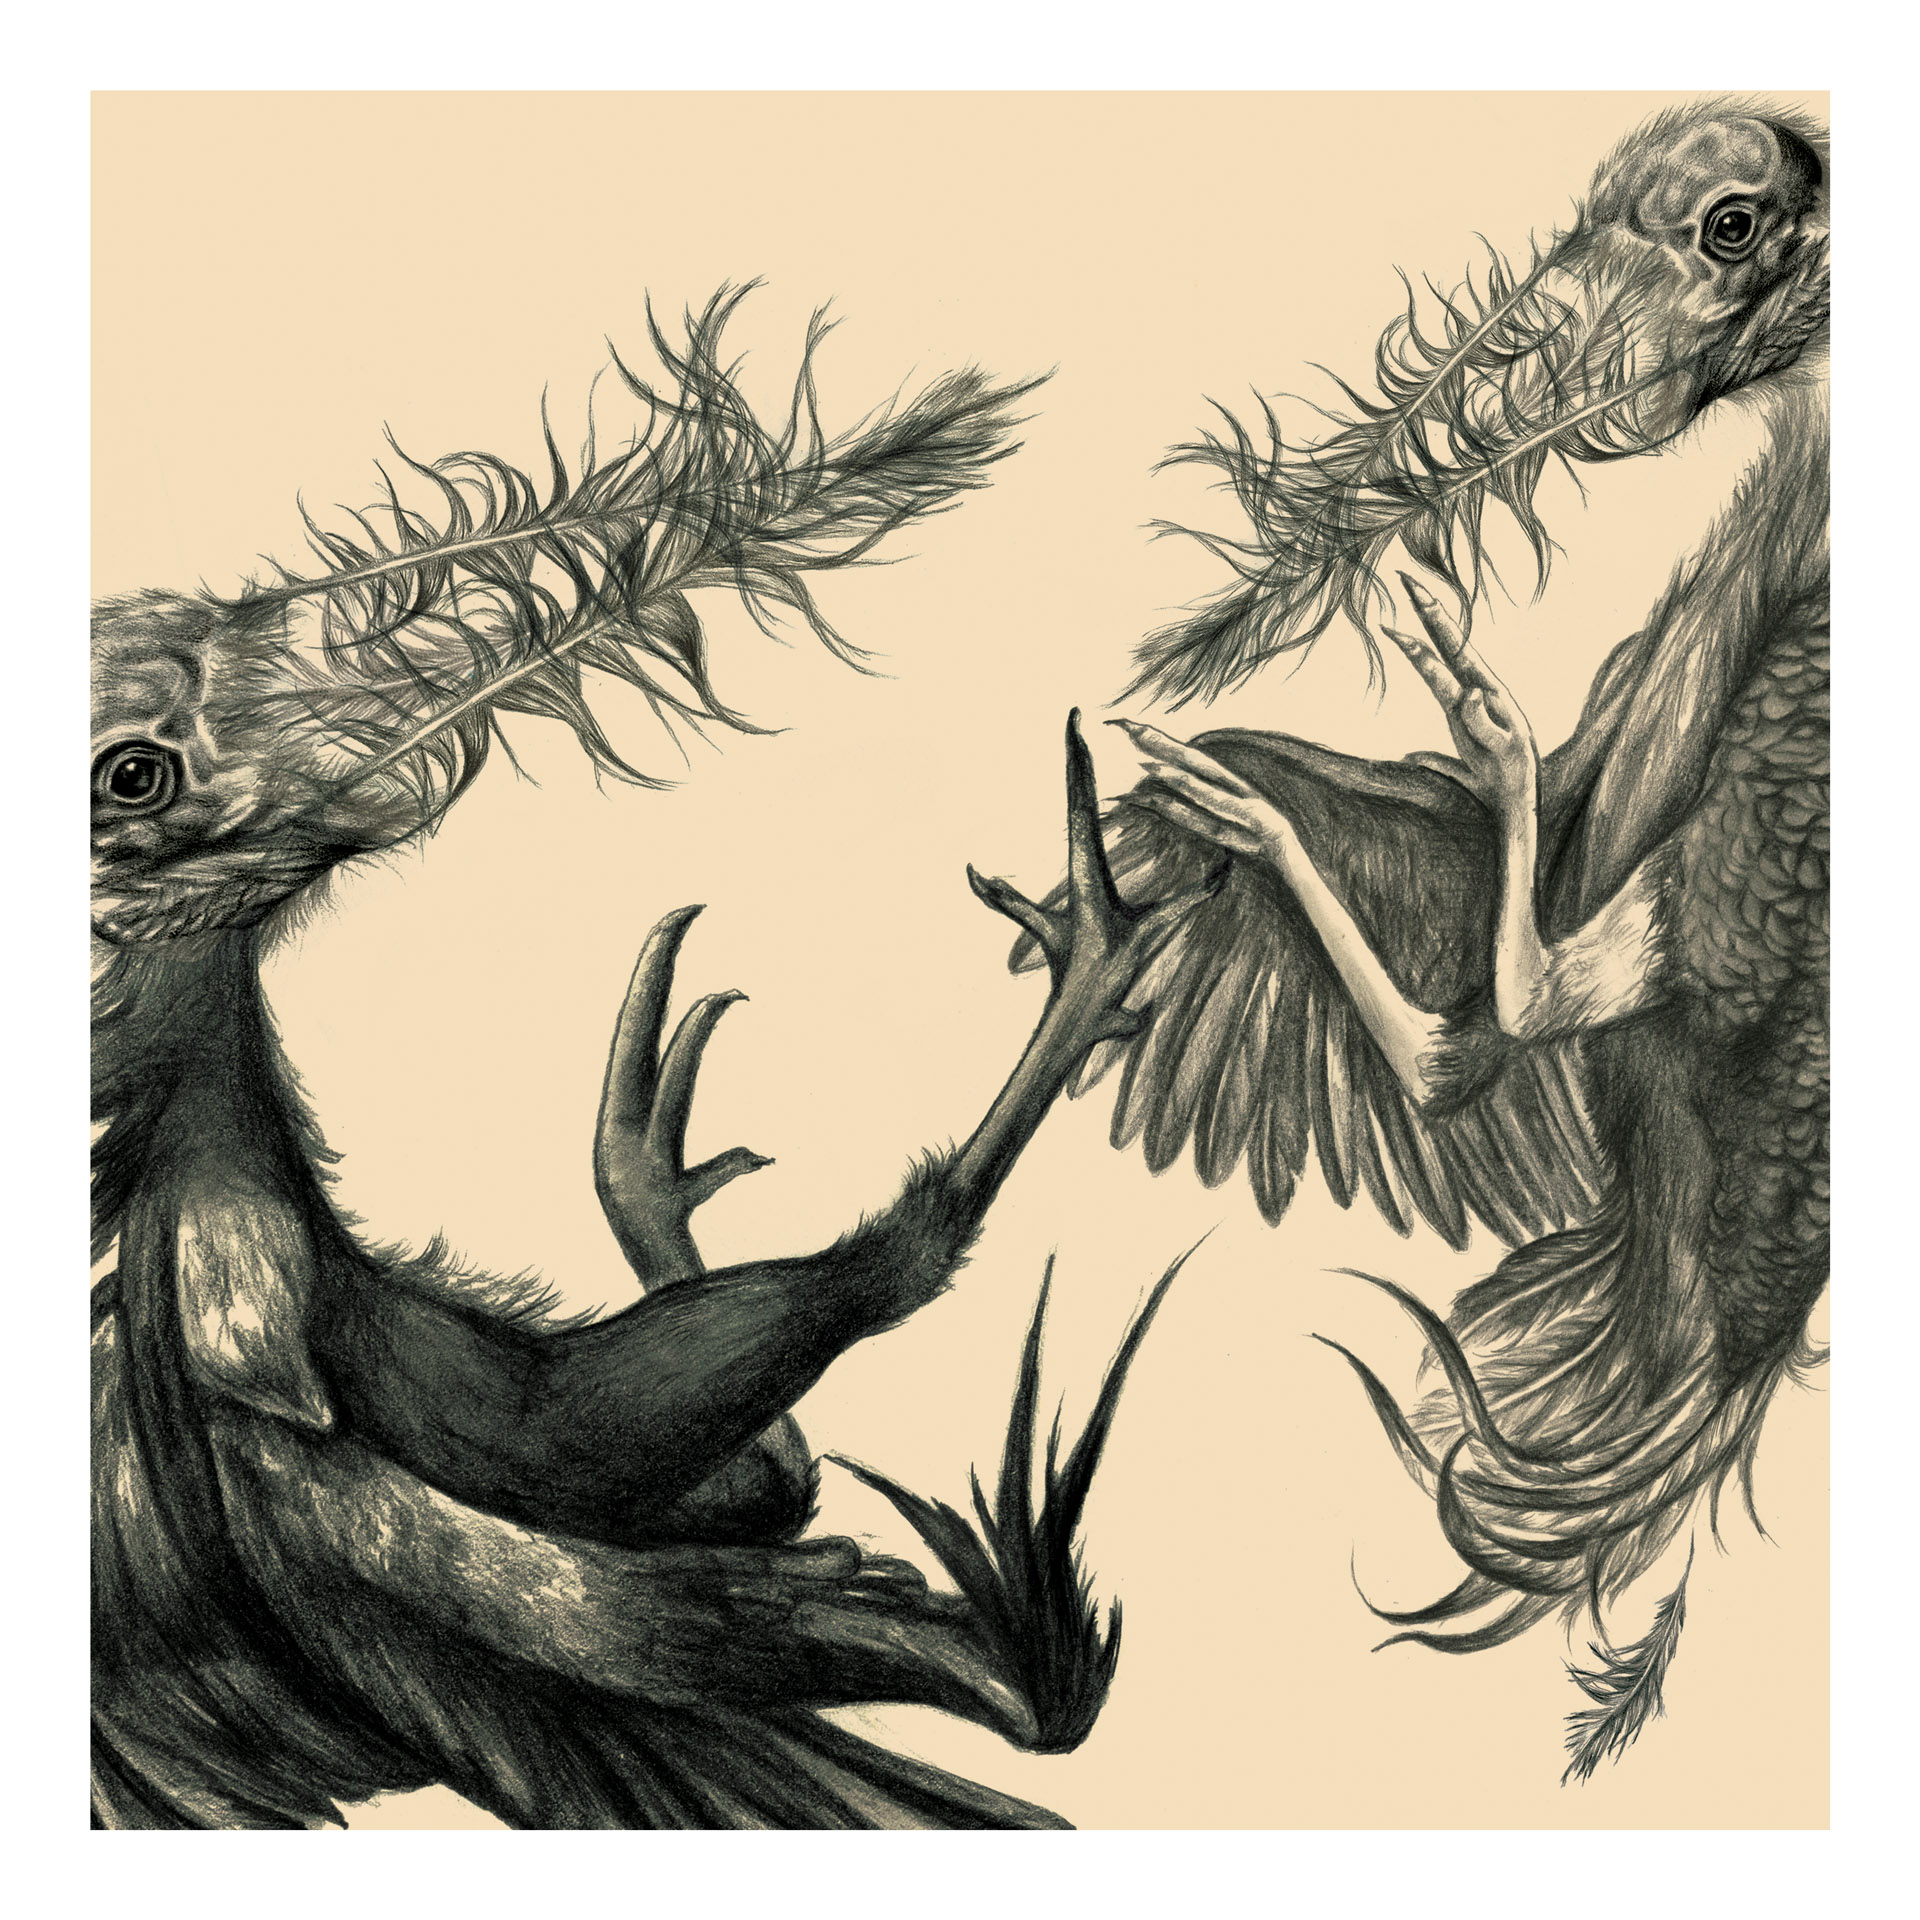 Julia Szulc Illustration. Illustration for Feathered Arms album cover. Bird Fight.